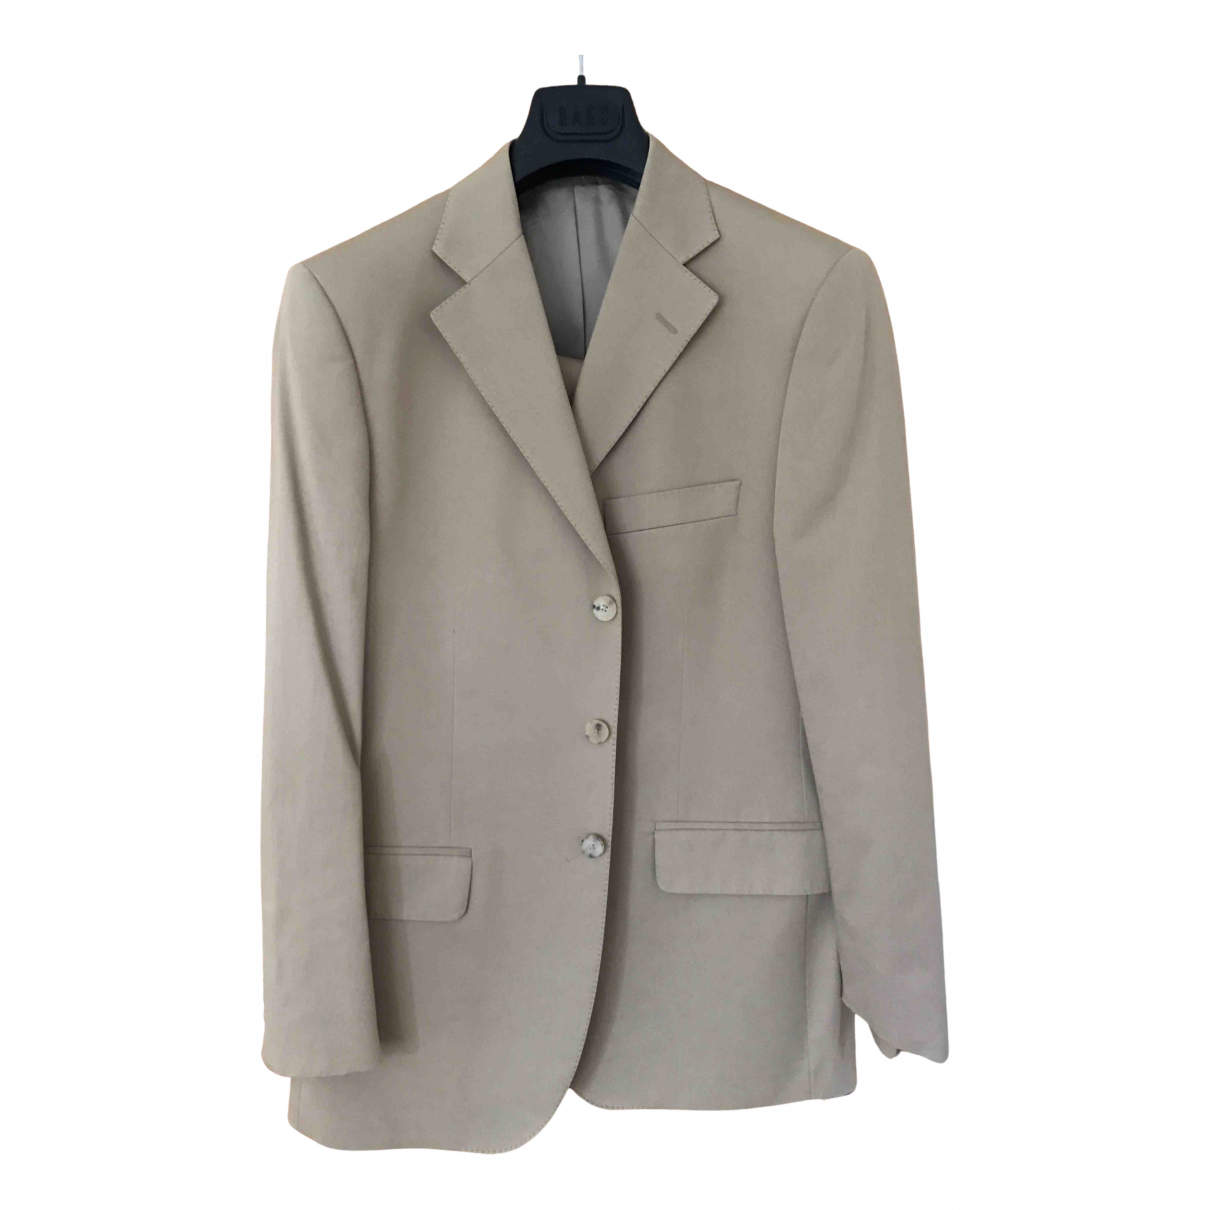 Daks N Beige Cotton Suits for Men 40 UK - US